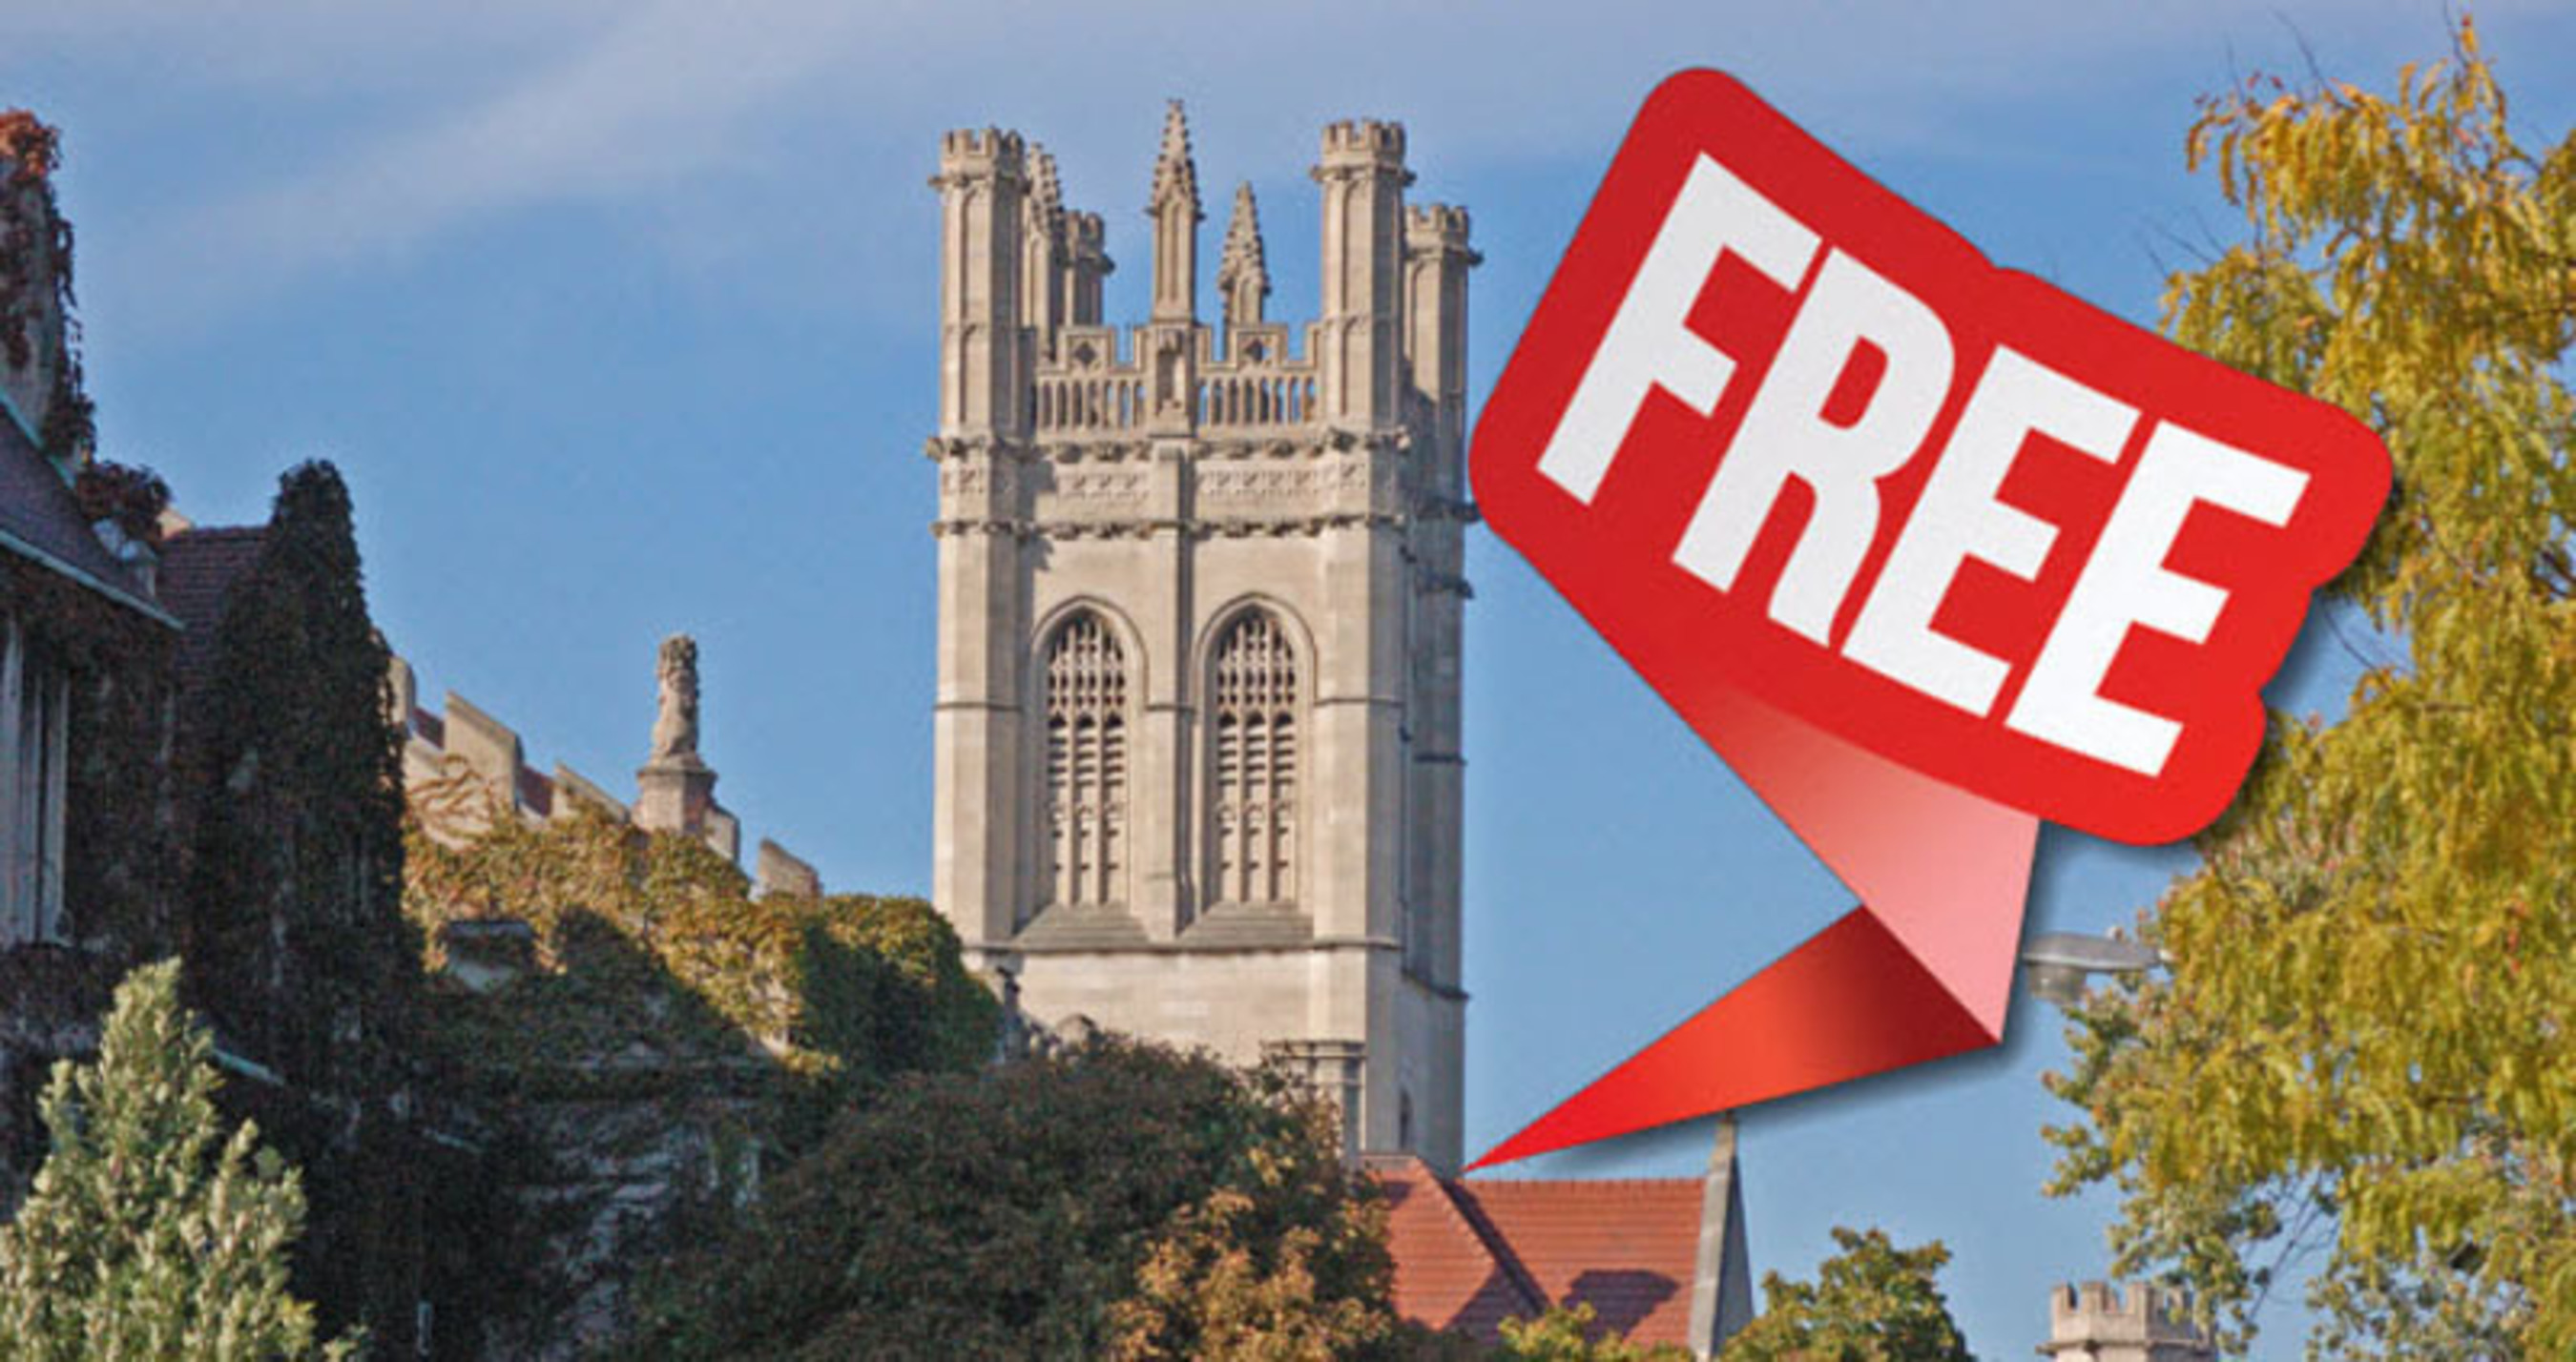 """The University of Chicago levies a $75 application fee, but says it will be """"automatically waived"""" if you tell them your family earns """"less than or around"""" $75,000 a year in the """"additional Information"""" section of the Common Application.  (PRNewsFoto/60second Recap)"""